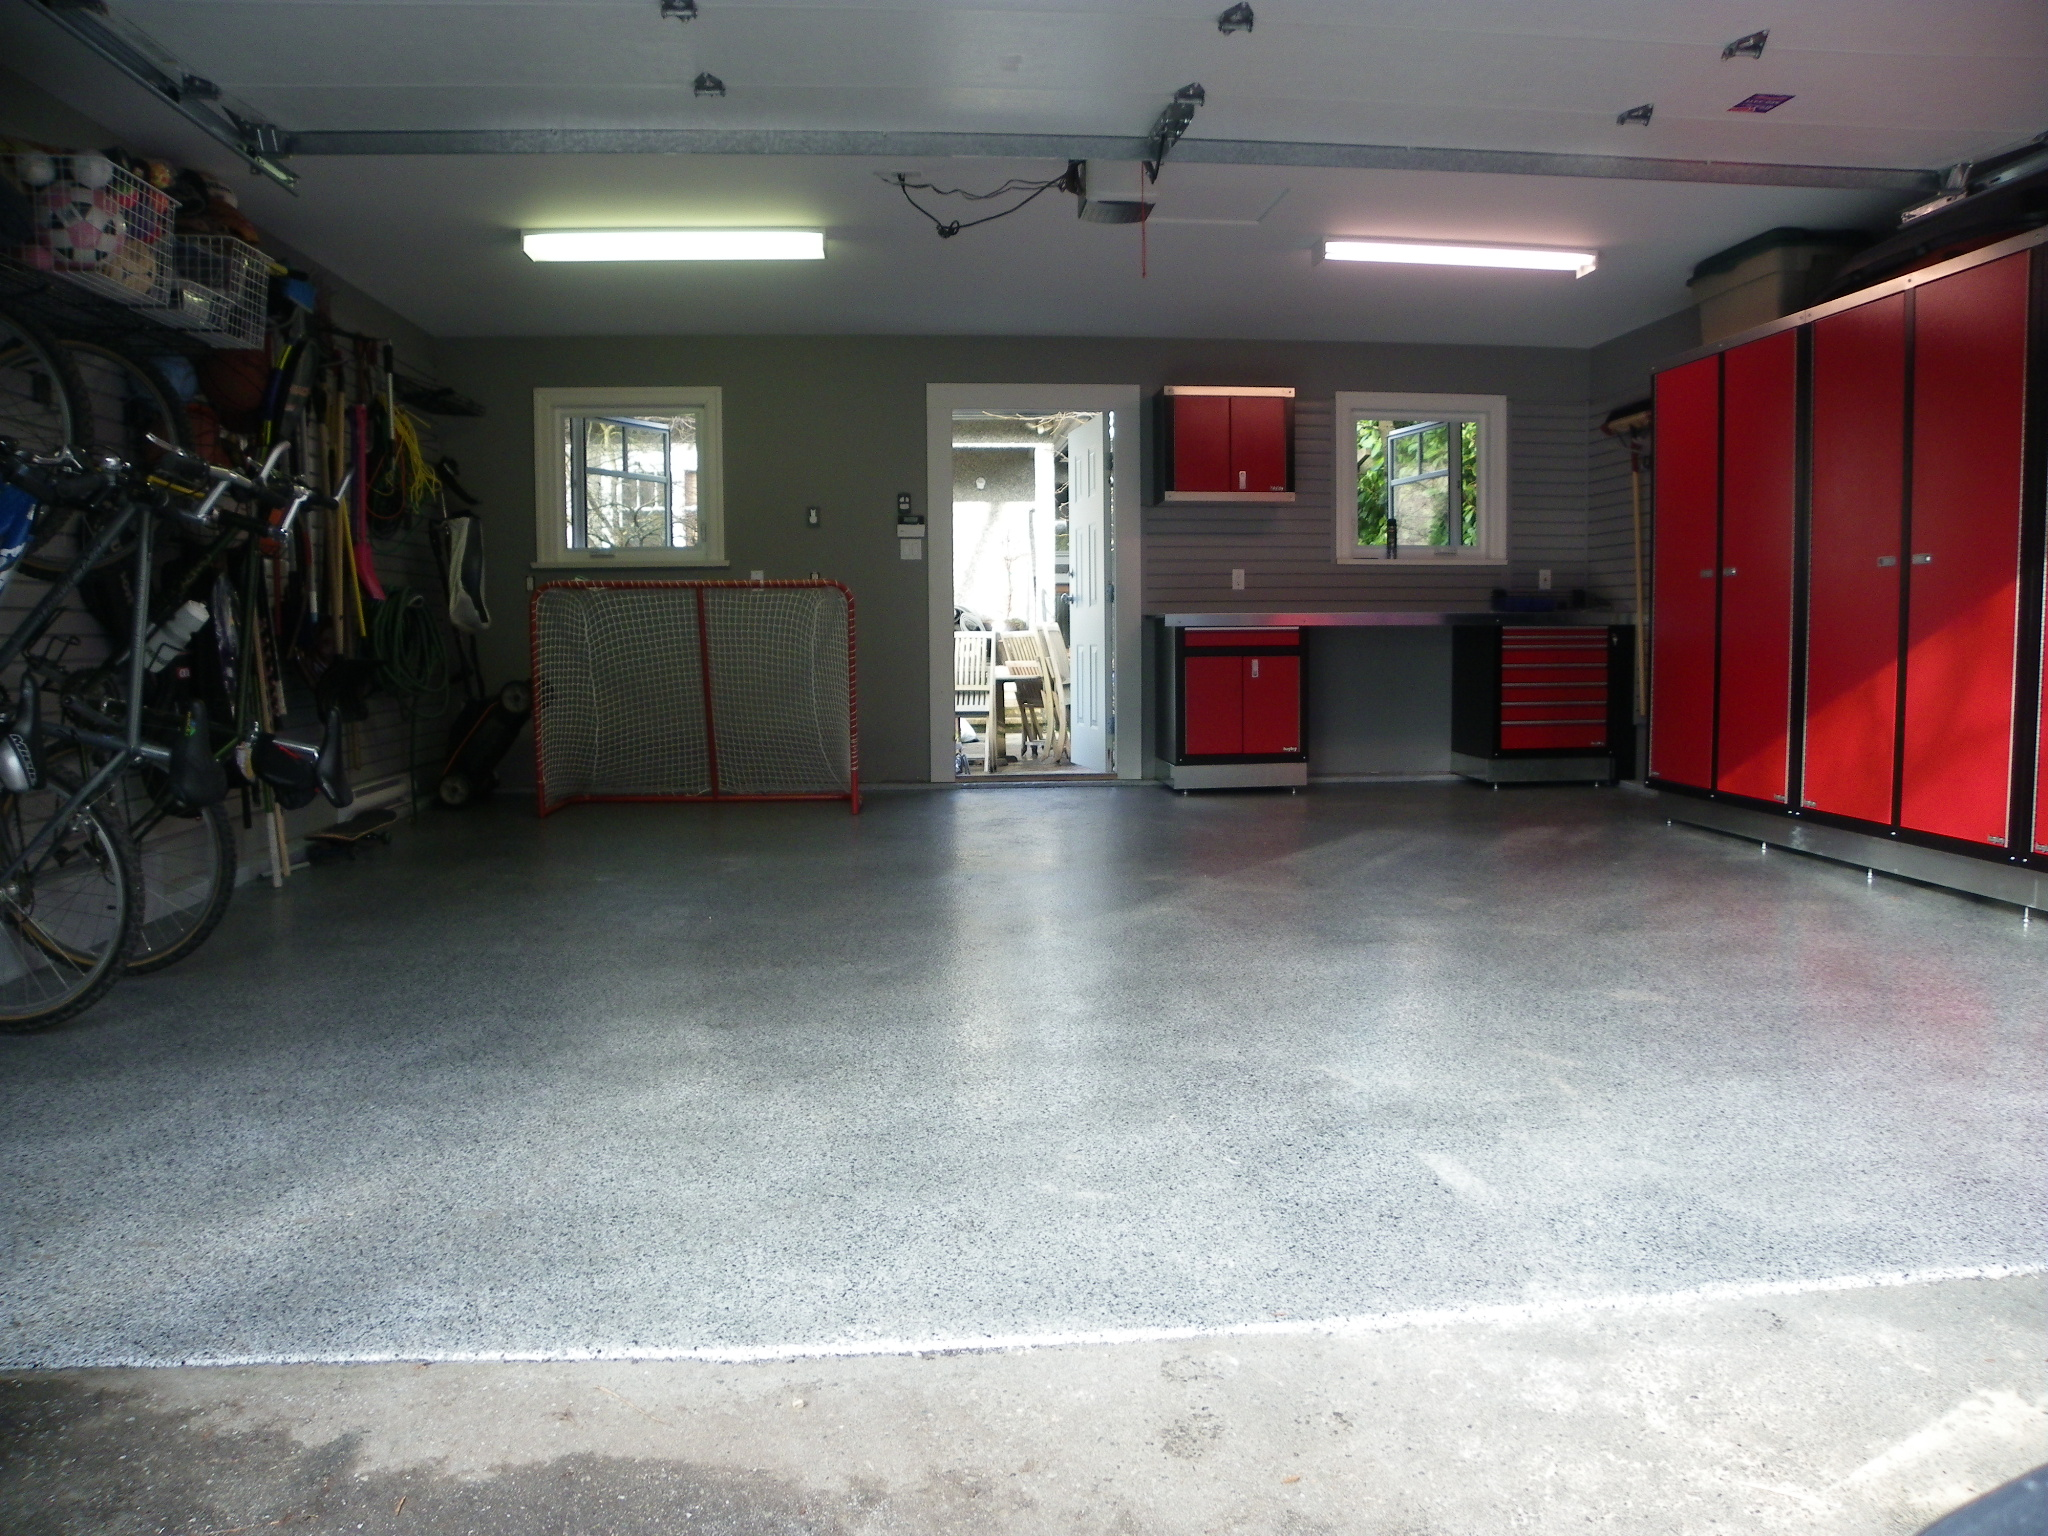 Dream garage garage cabinets garage floor tiles - Additionally West Coast Dream Garage Offers Custom Garage Wood Or Laminate Cabinets Made Locally Custom Designed With Those Extra Features